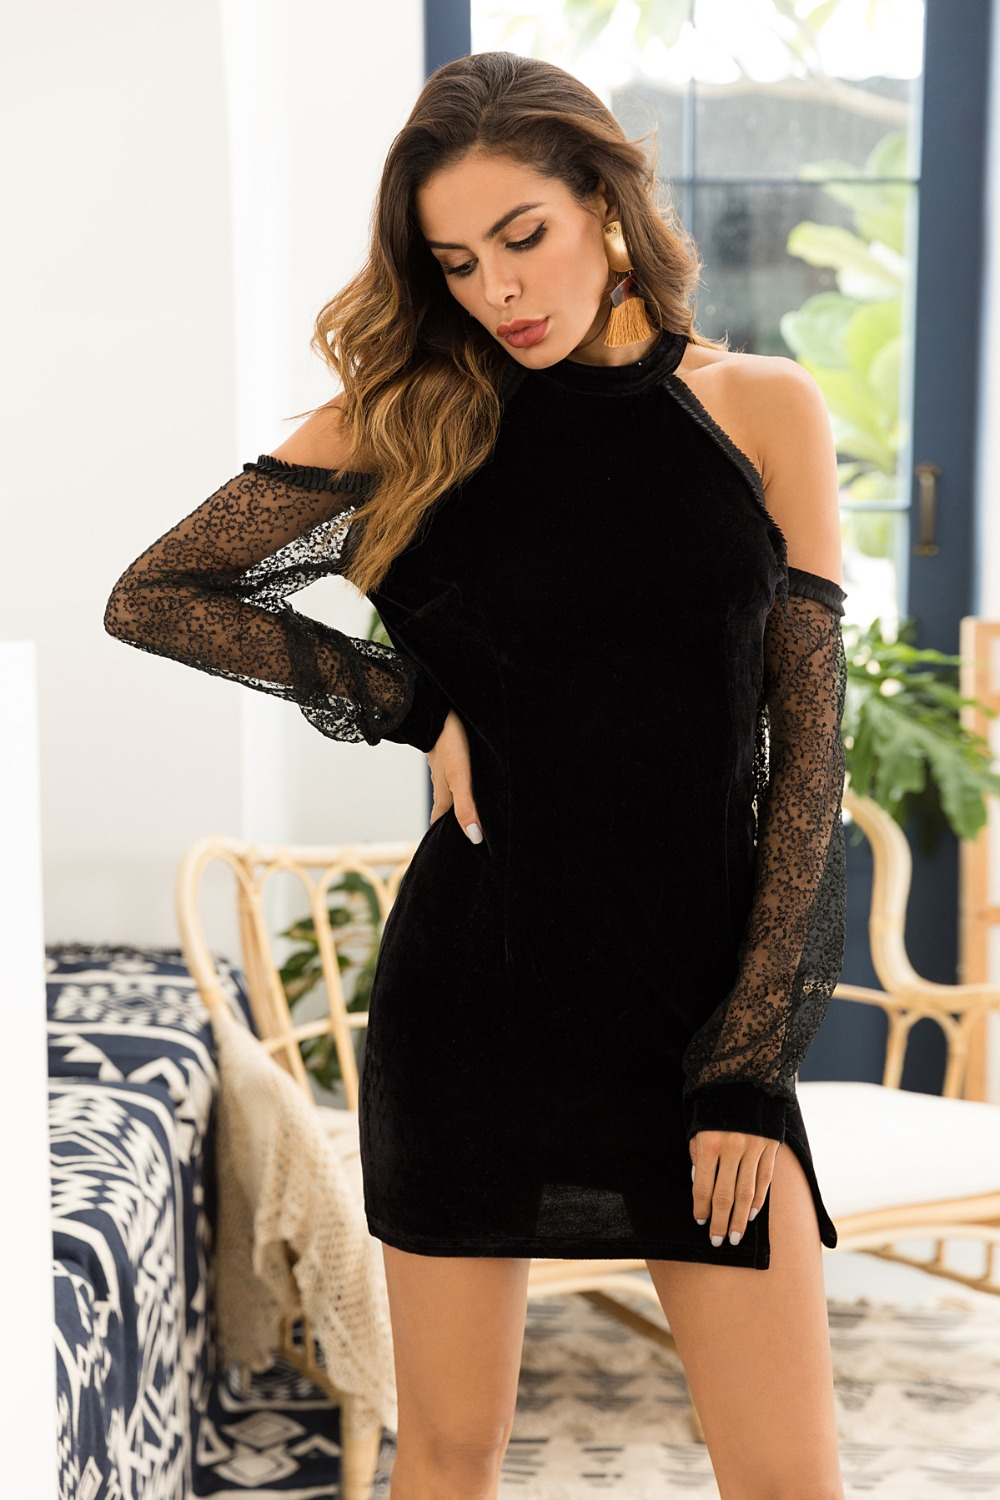 Women's Clothing Vintage Diamonds Dresses For Women V Neck Sleeveless Off Shoulder Suspender High Waist Mesh Dress Fashion Clothes R172 Fixing Prices According To Quality Of Products